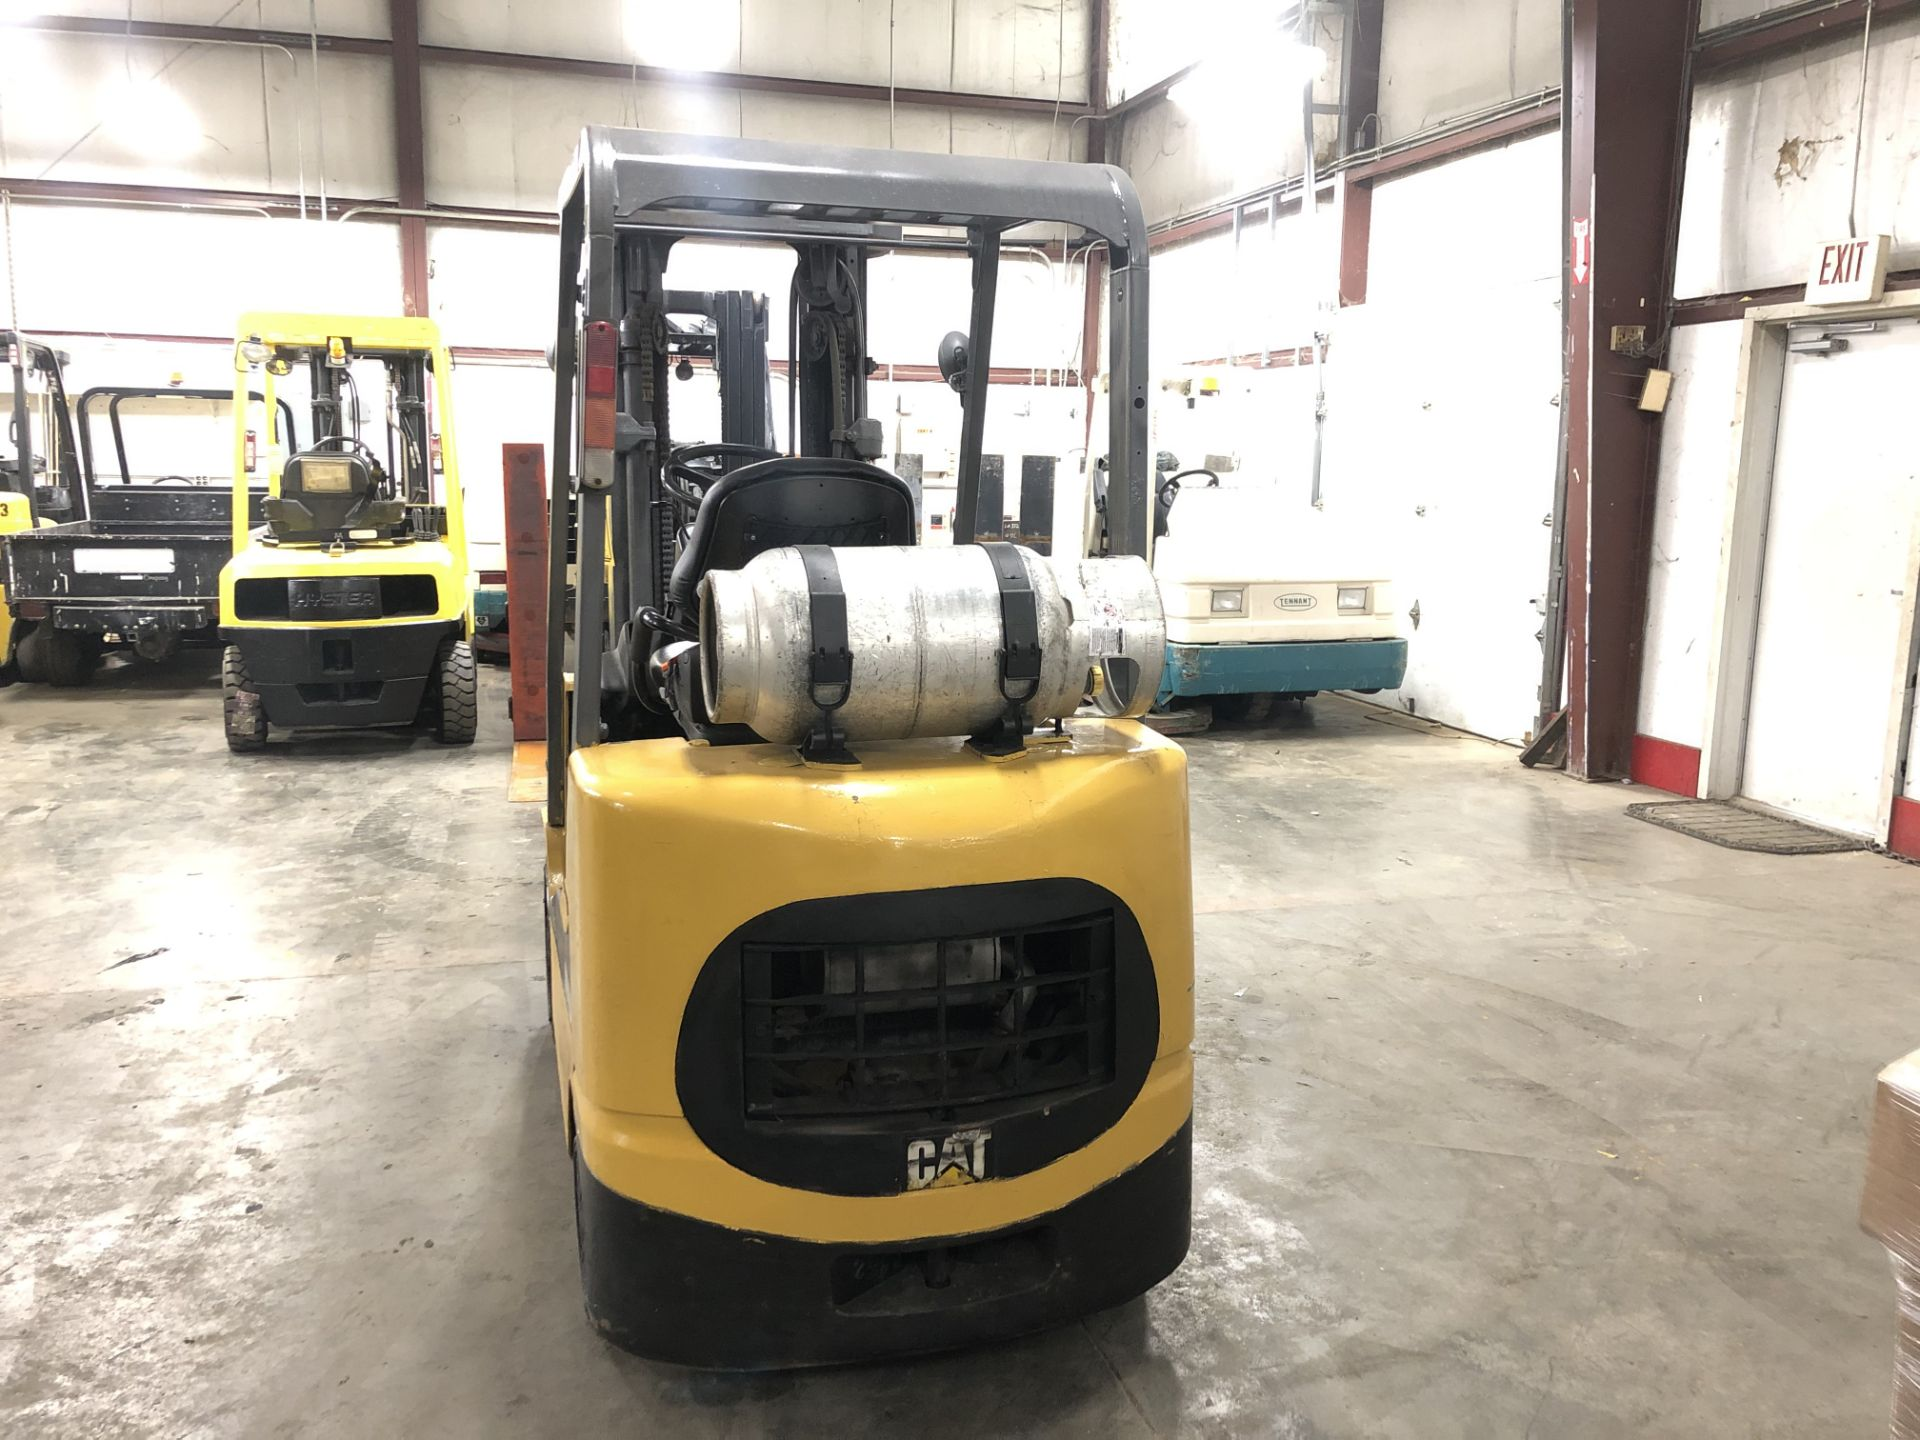 Lot 11 - CATERPILLAR 5,000-LB., MODEL: GC25K, 3,763 HOURS, LPG, LEVER SHIFT TRANSMISSION, SOLID TIRES